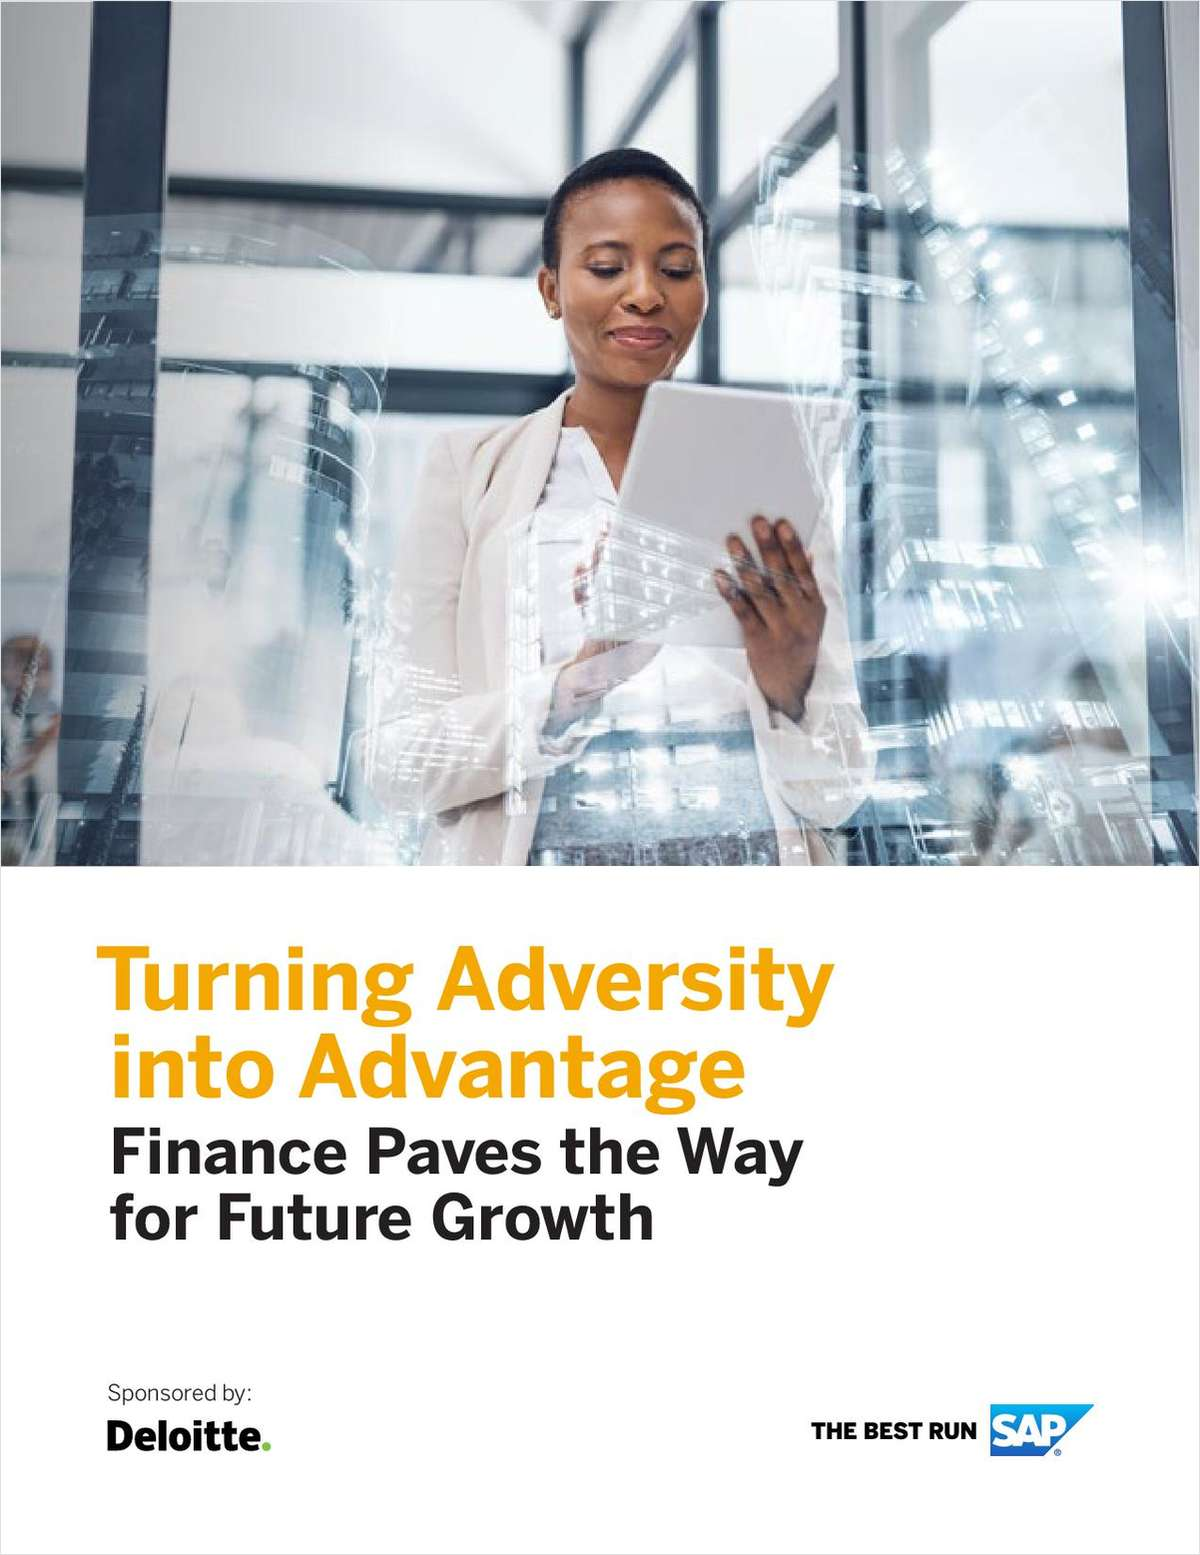 Turning Adversity into Advantage: Finance Paves the Way for Future Growth